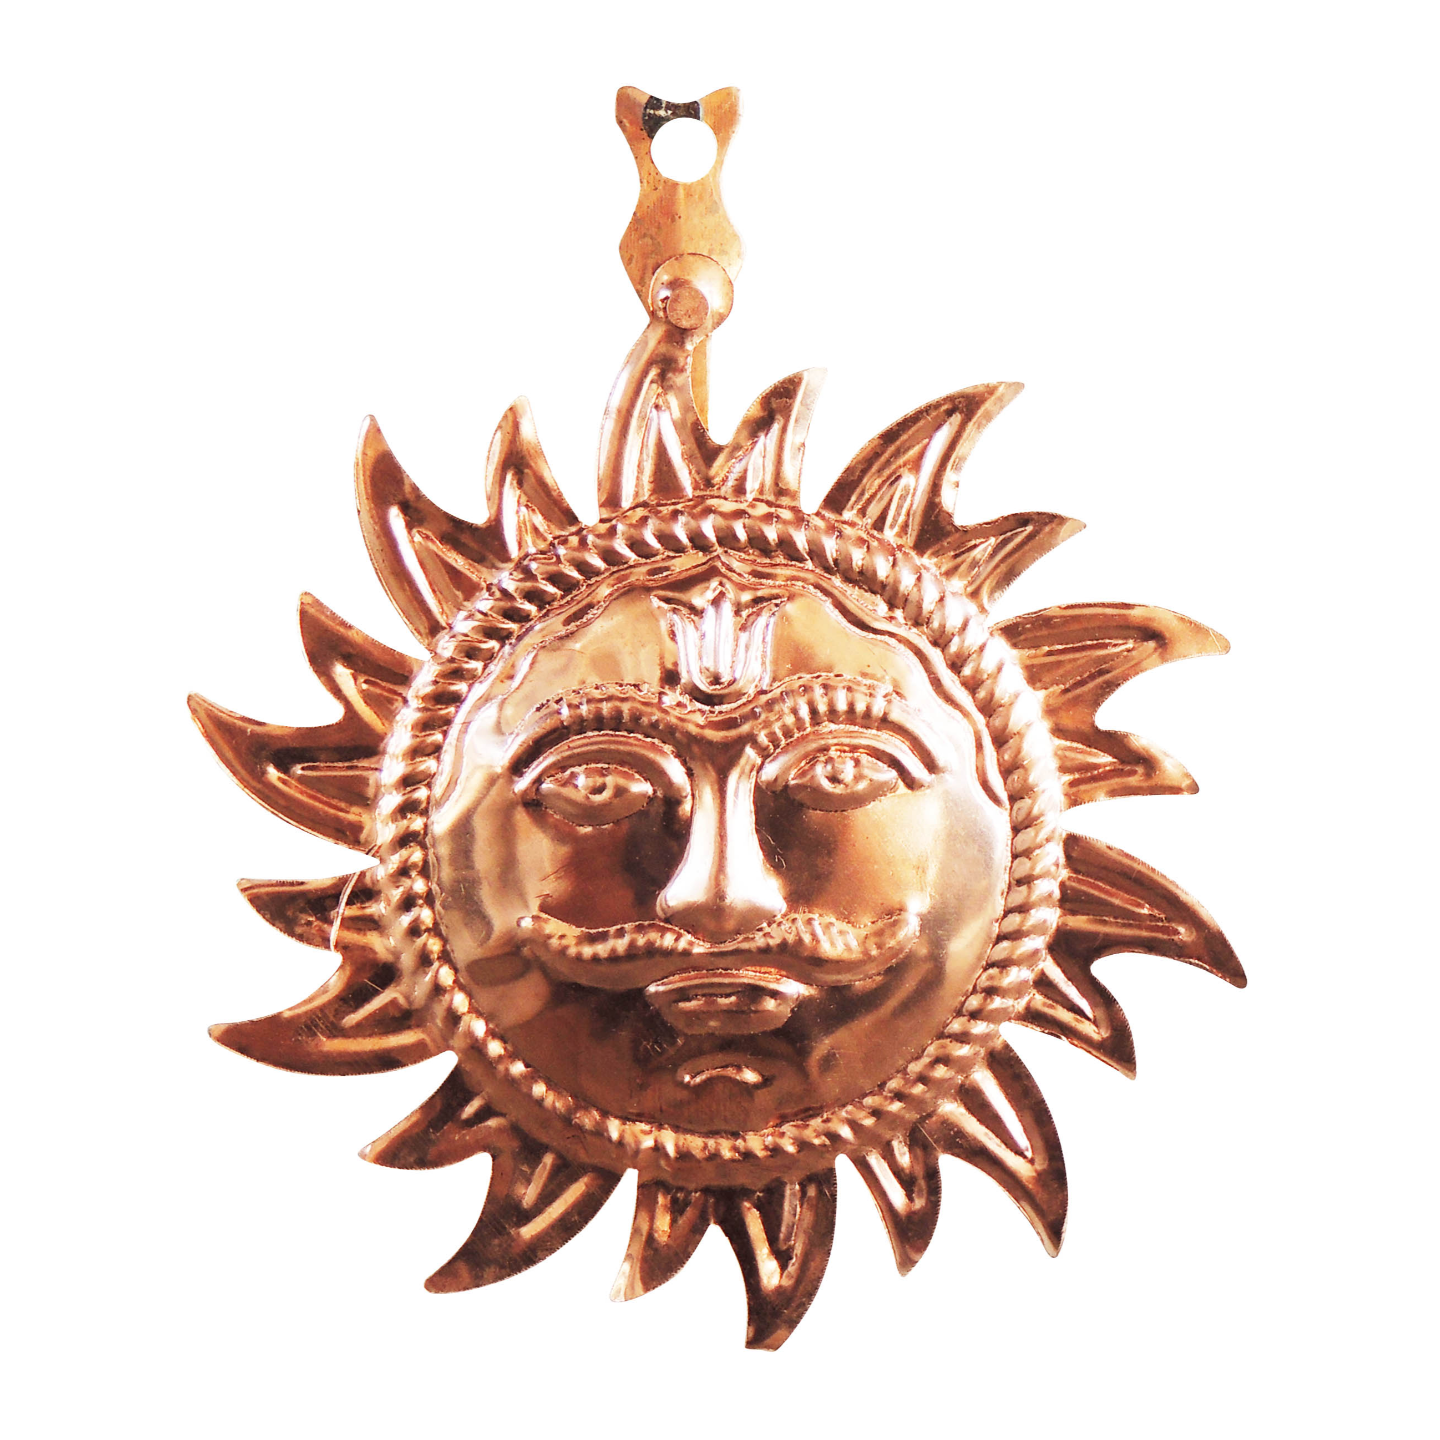 Copper Metal Wall Hanging Sun With Copper Finish - 5 Inch (Z219 C)